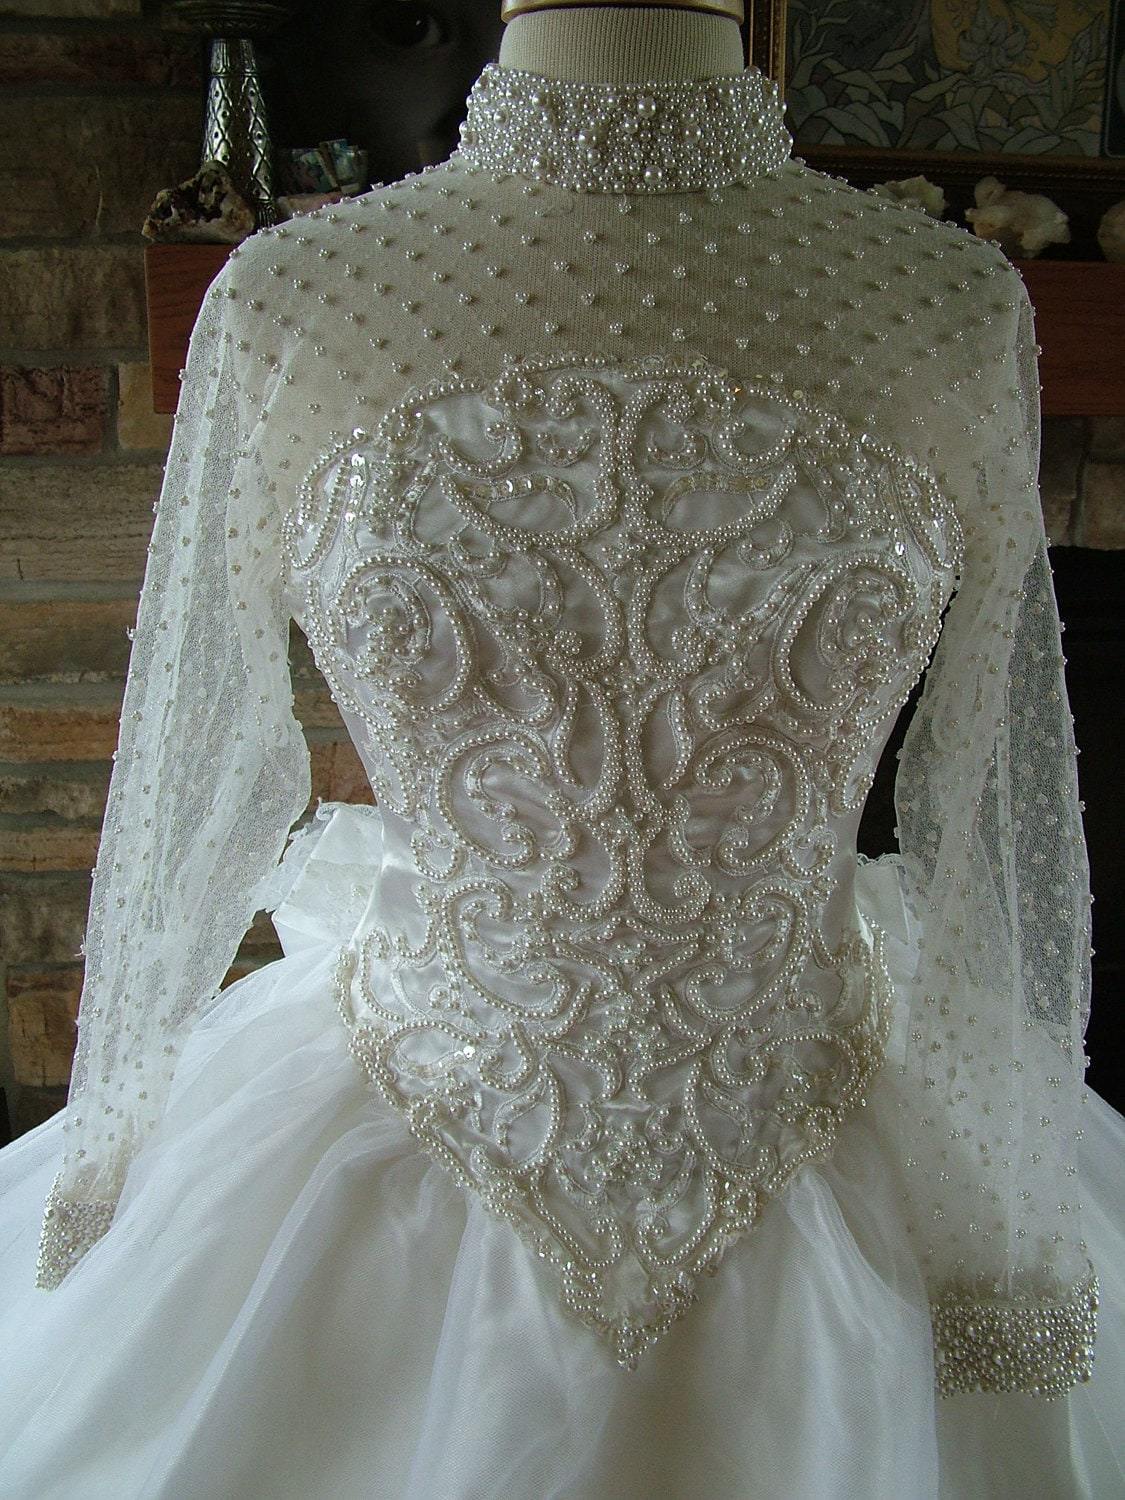 Wedding Dress Vintage Pearl Beaded Bridal Gown Ballgown Tulle